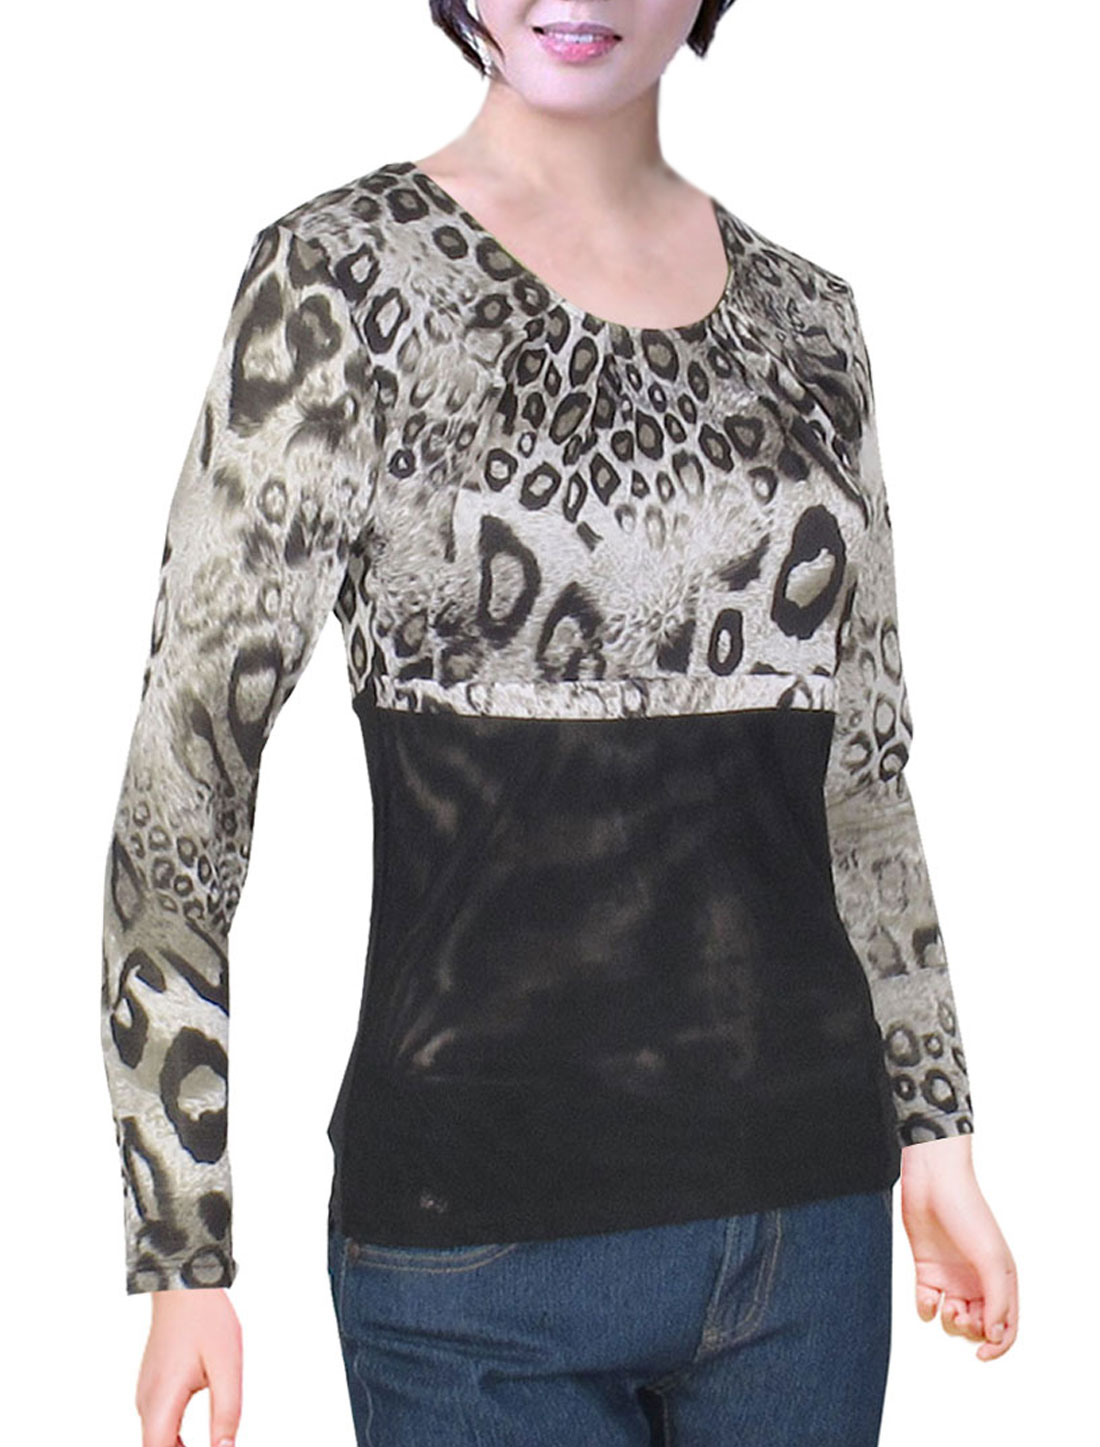 Beige Leopard Pattern Scoop Neck Long Sleeve Shirt Tops for Ladies XS